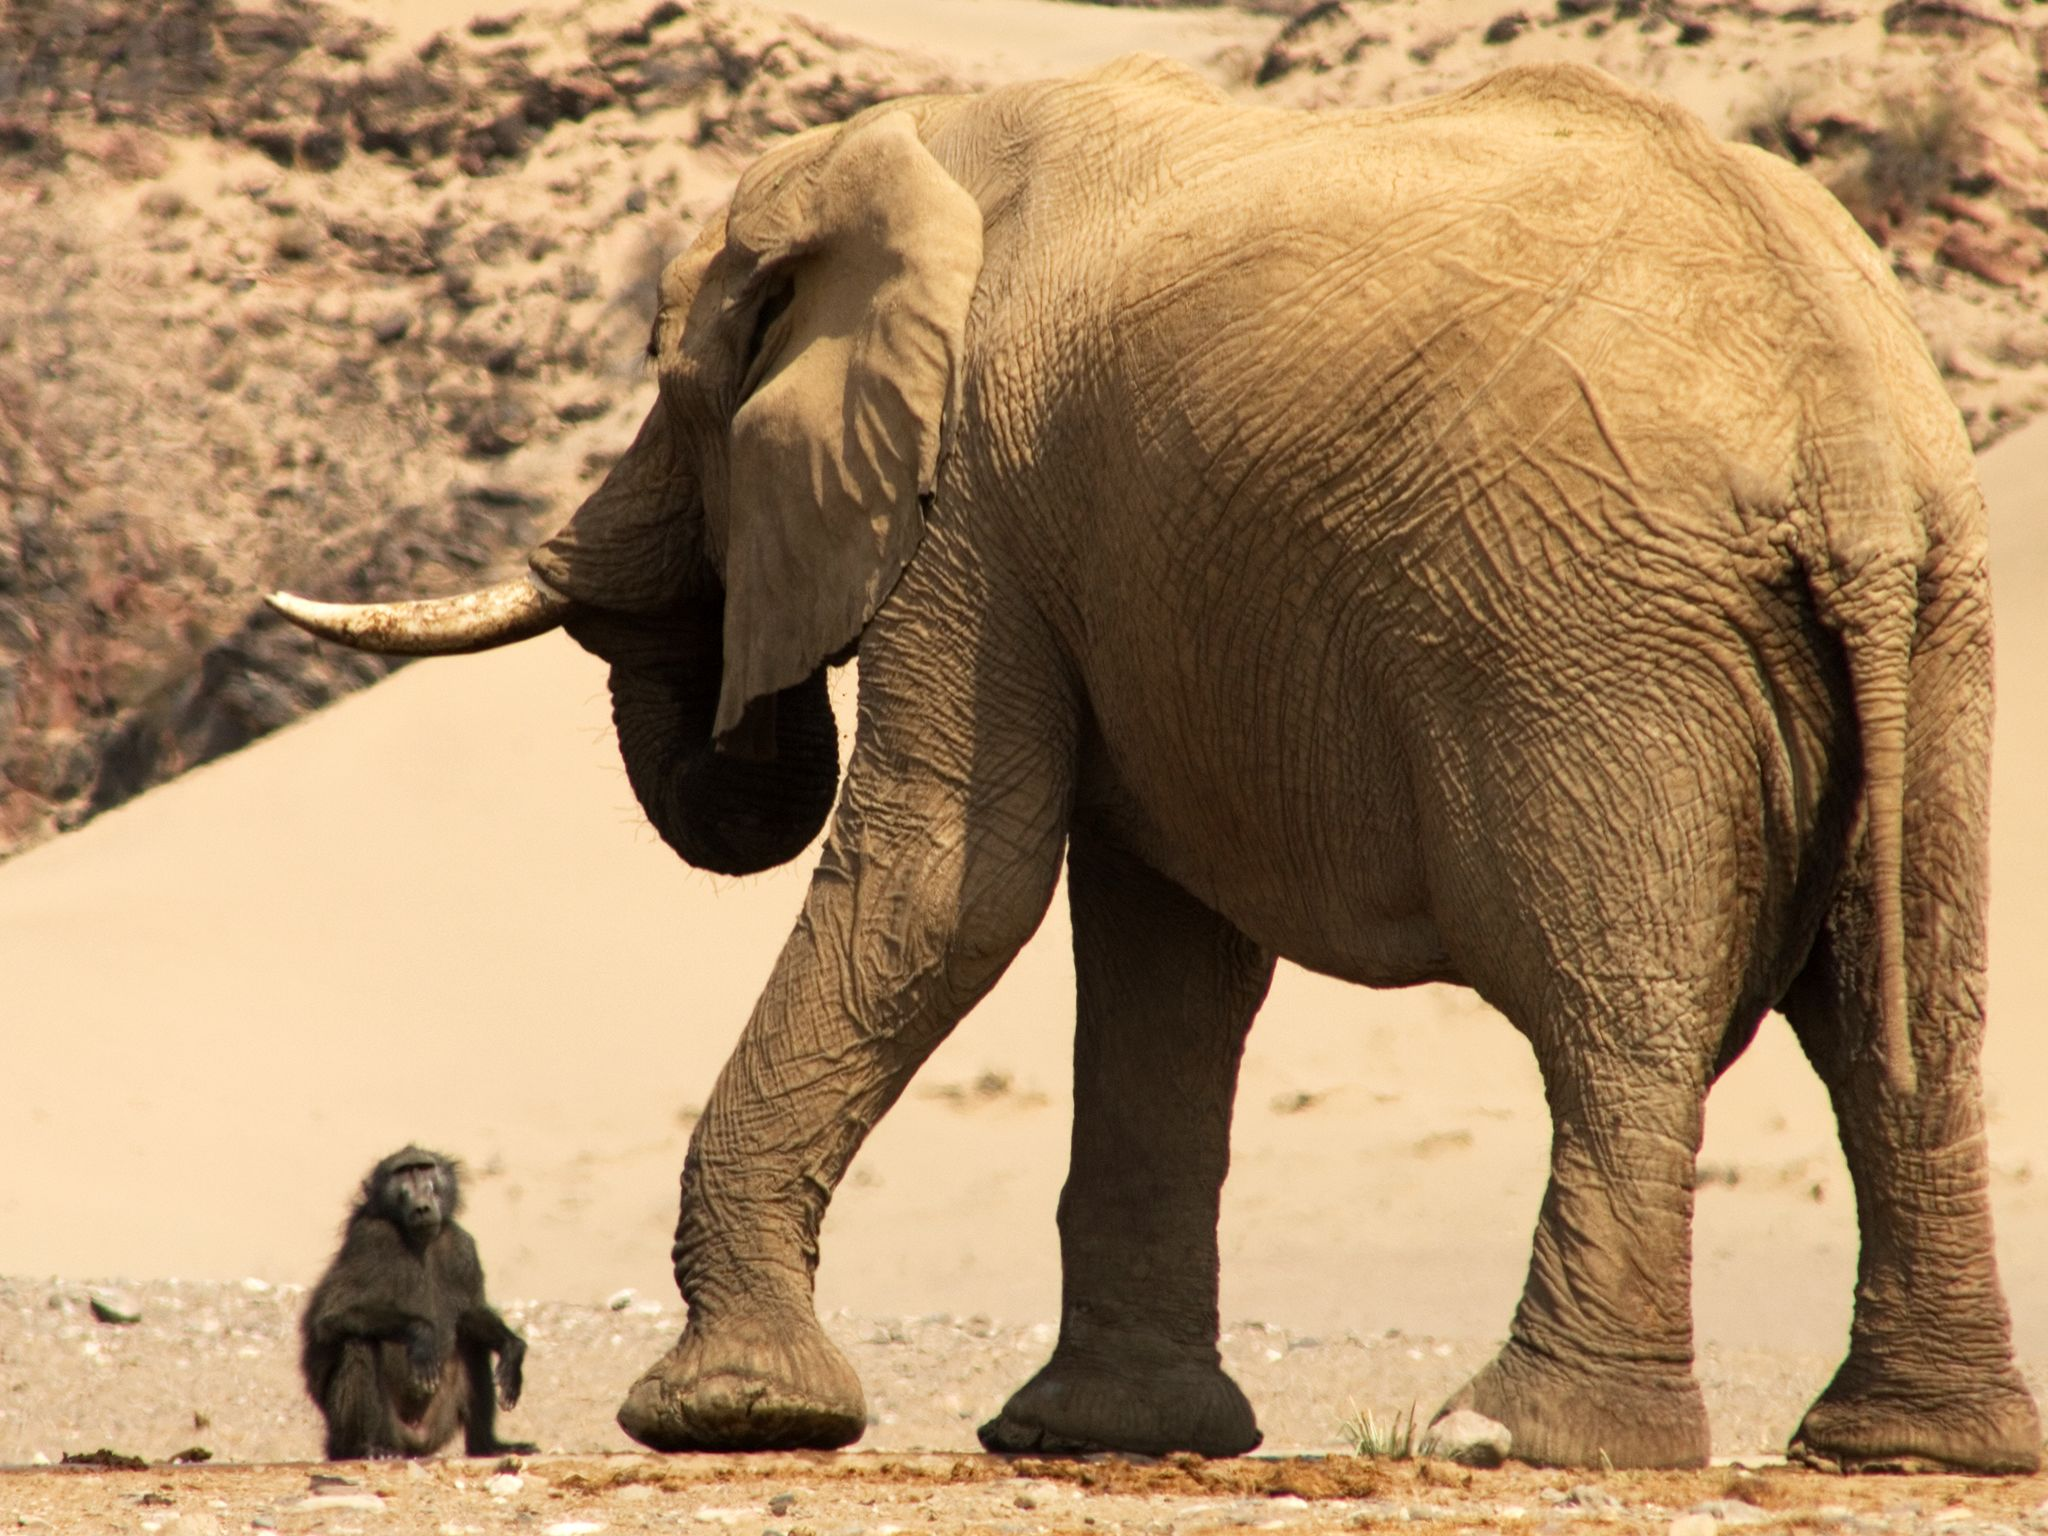 Elephant standing with baboon sitting on ground close by. This image is from Wild Namibia. [Photo of the day - سپتامبر 2014]